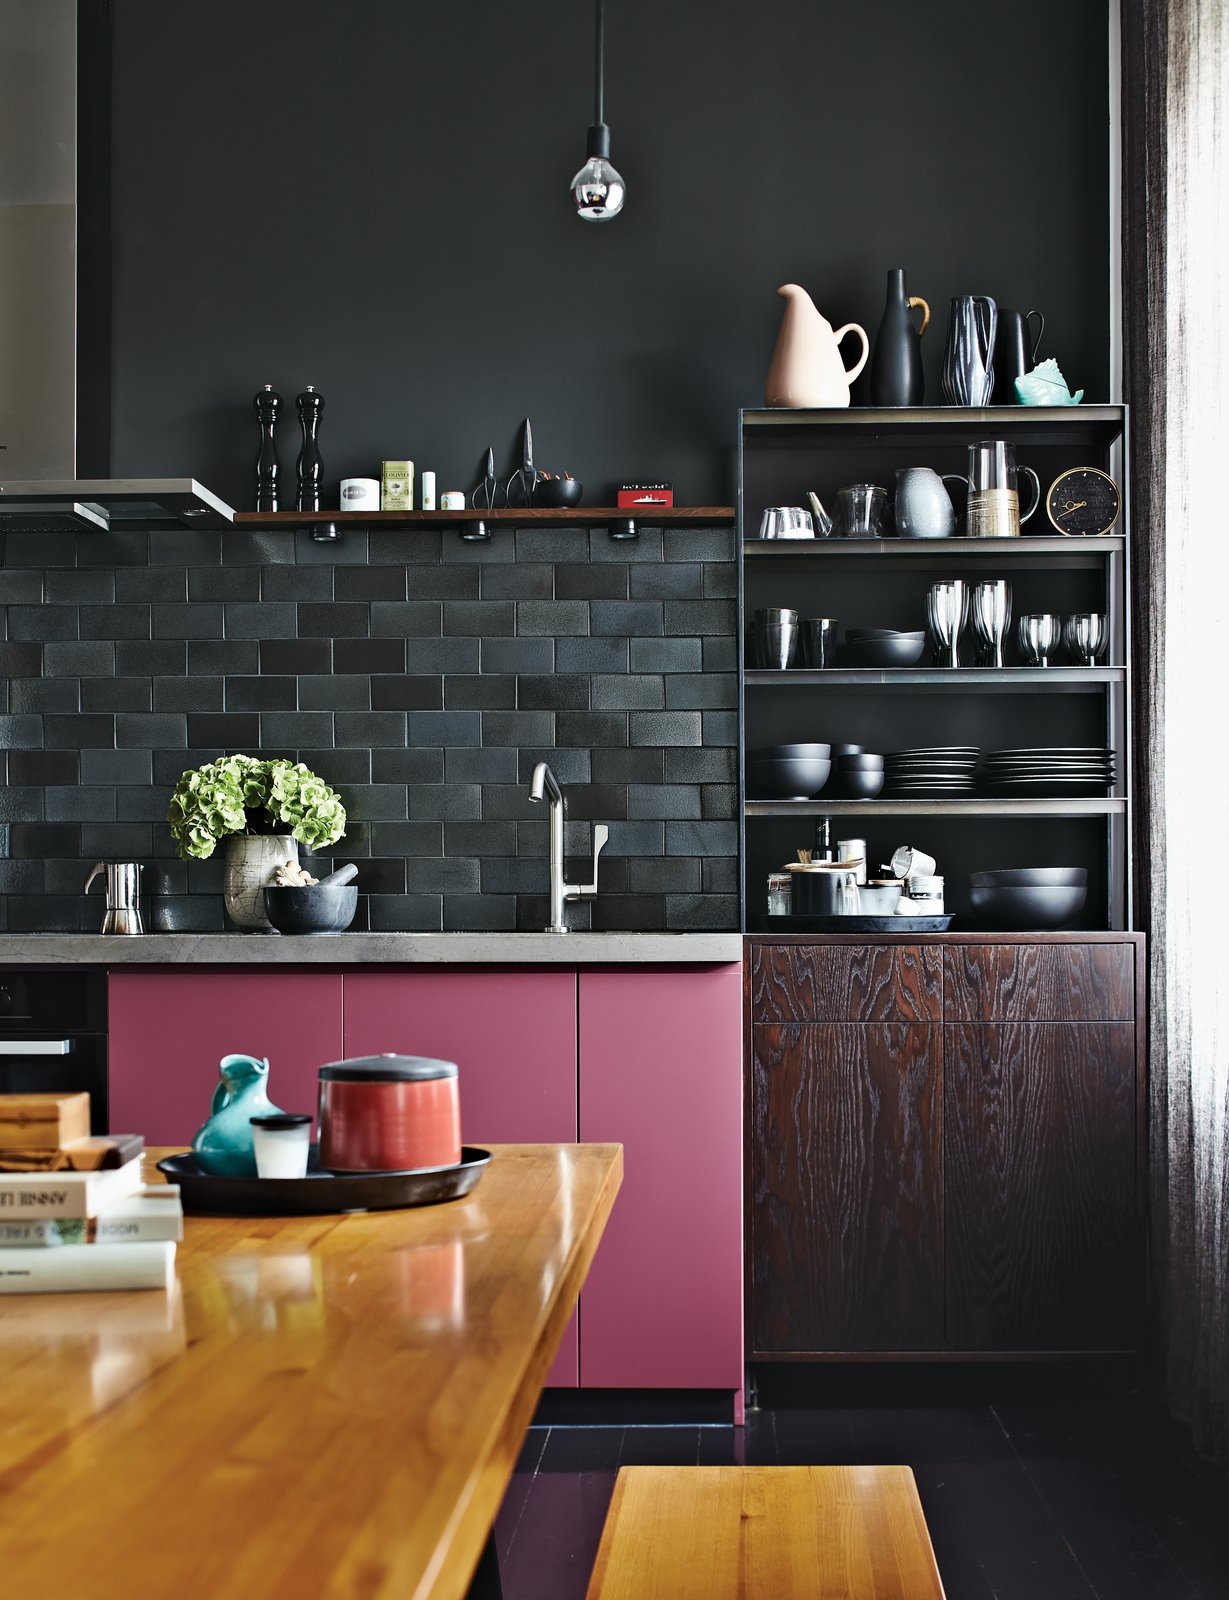 Kitchen, Colorful Cabinet, Range Hood, Pendant Lighting, and Wood Cabinet He created the star as a prop for a photo shoot. The kitchen cabinets benefit from a pop of rosy color, a custom hue. Fehrentz designed the steel-and-wood storage unit.  Kitchens from Inside Peter Fehrentz's Renovated Flat in Berlin